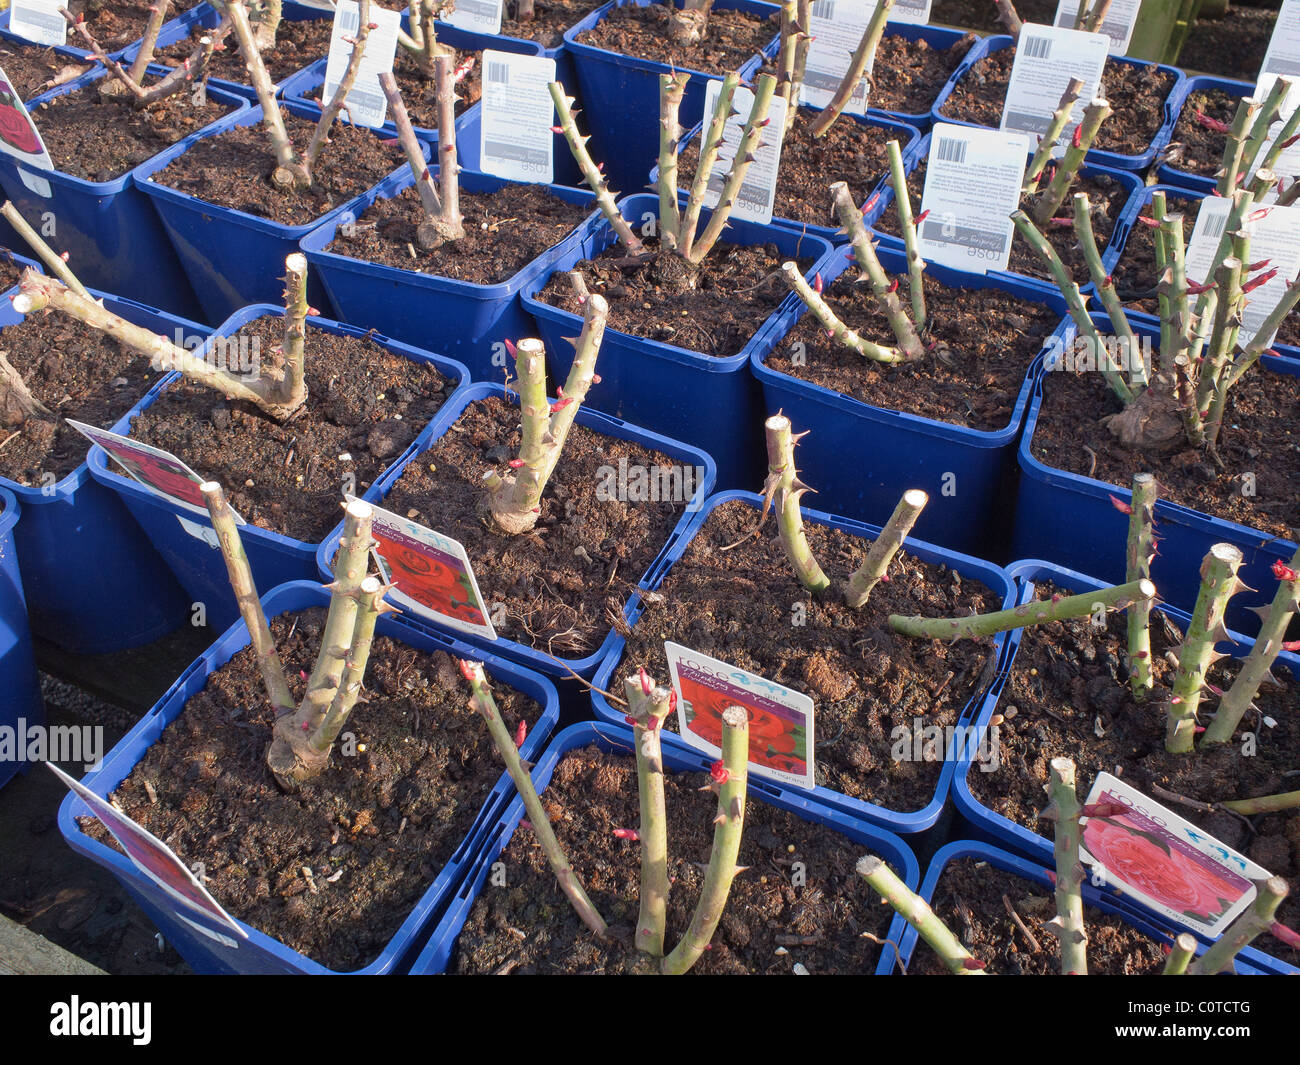 Rose plants in blue tubs for sale in a garden centre for planting in ...